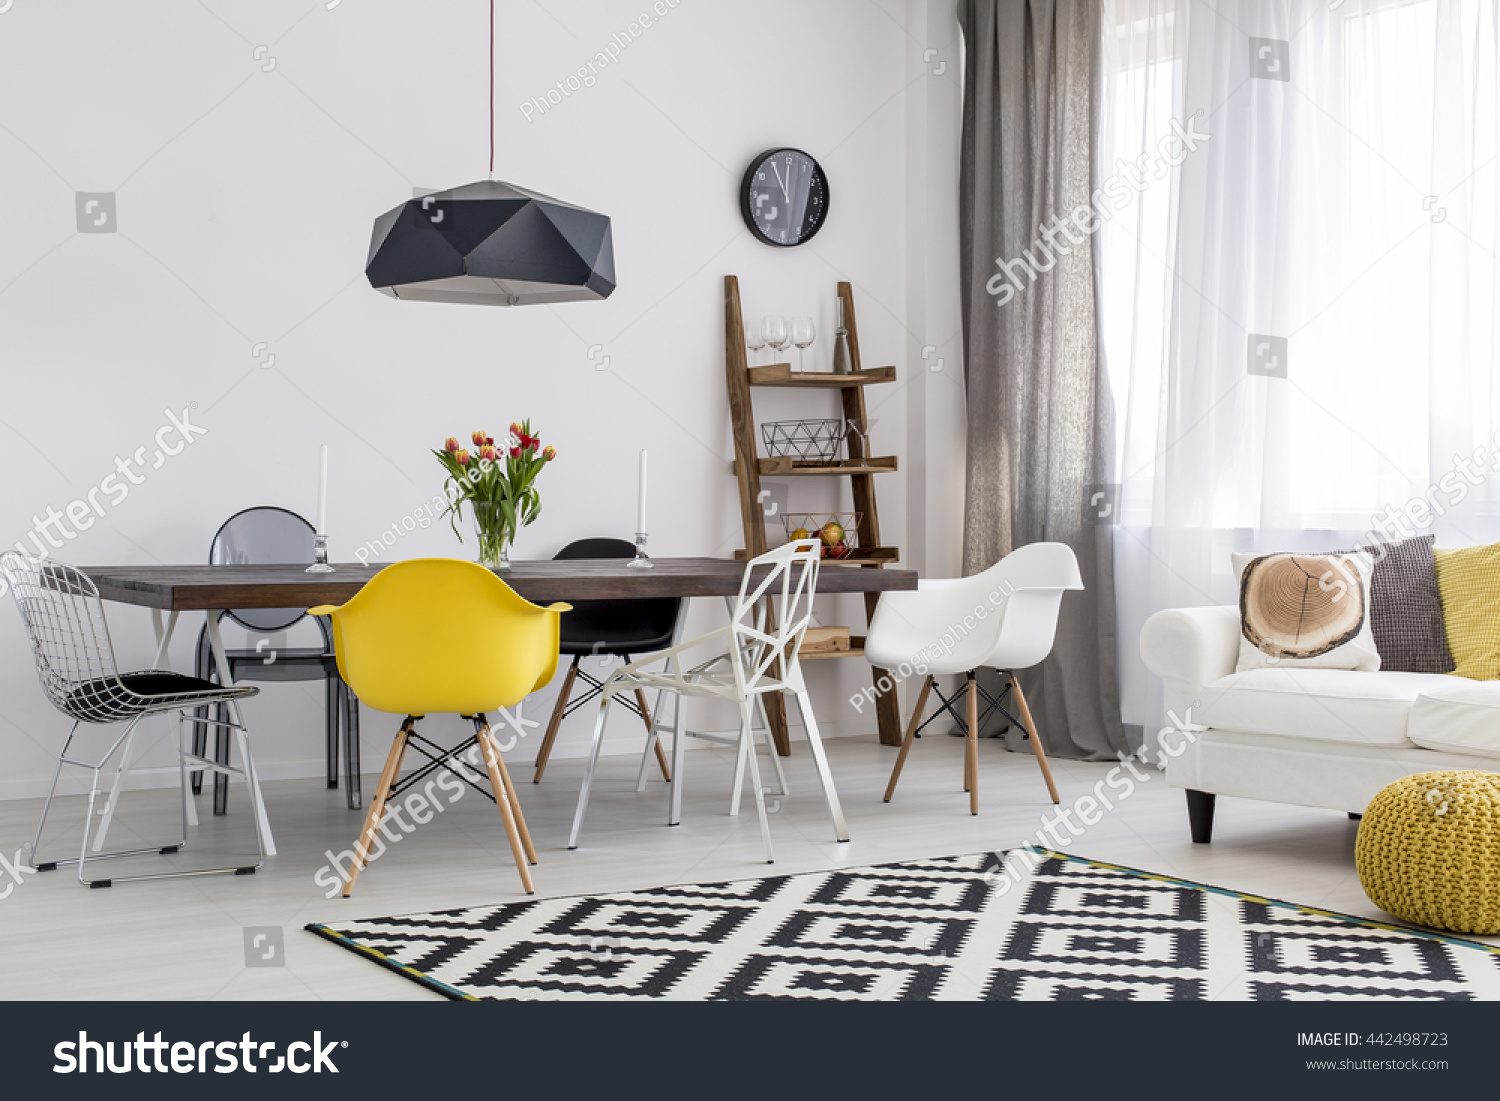 Yellow Accessories For Living Room Shot Of A Black And White Studio Decorated With Yellow Accessories